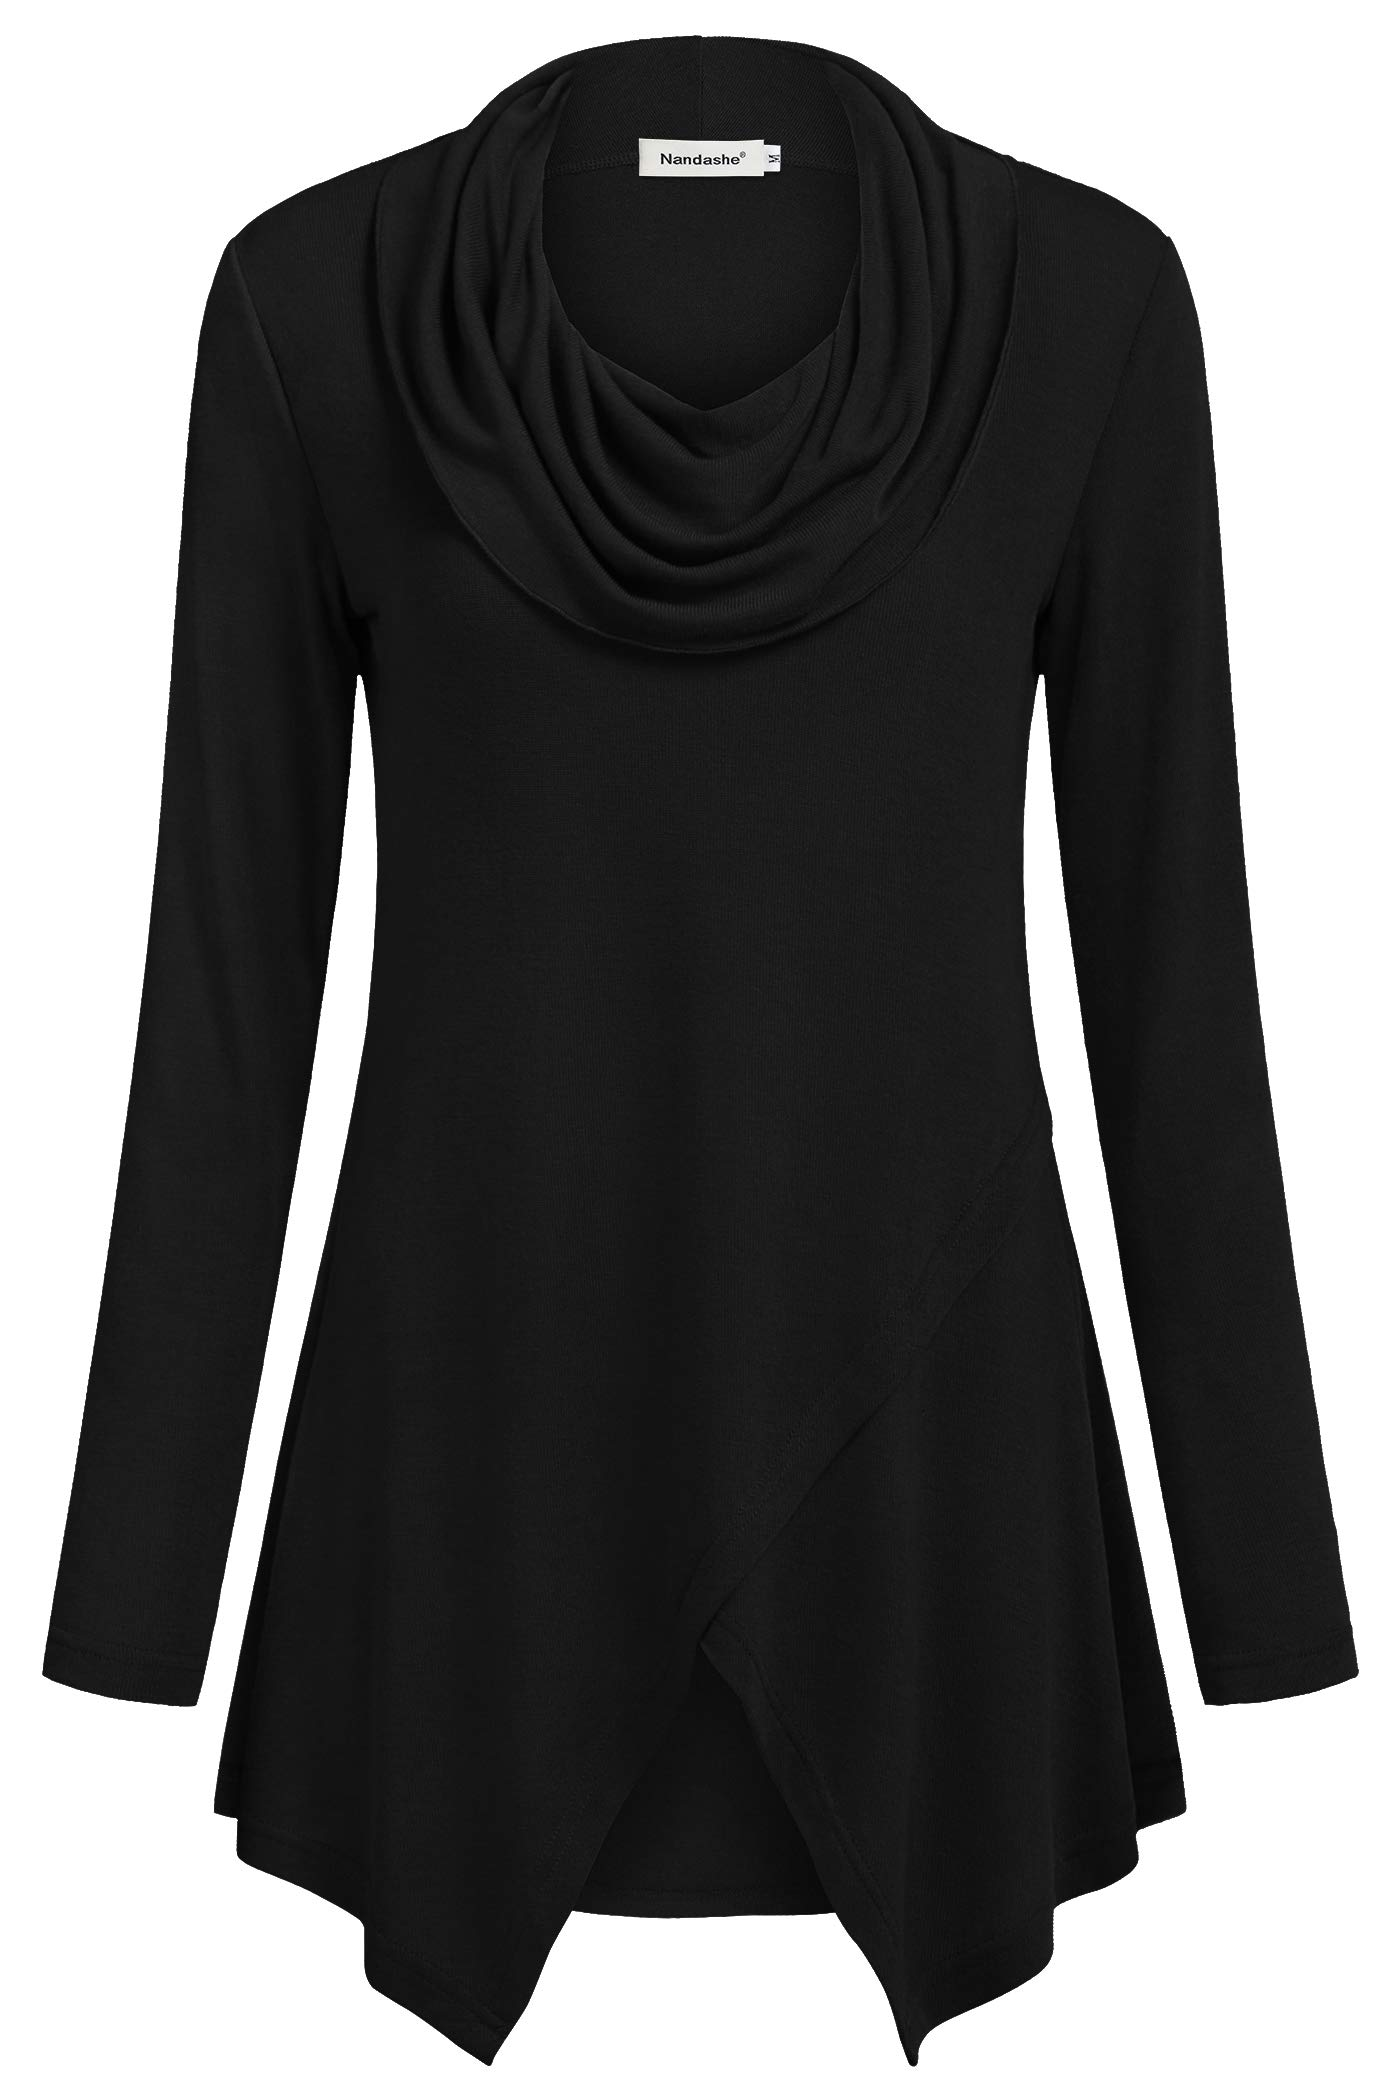 Nandashe Women Tunic Tops, Big Girls Chic Style Cowl Neck Solid Color Long Sleeve Asymmetrical Hem Flare and Fit Lightweight Flattering Sweaters for Leggings Plus Size Clothing Black 2XL